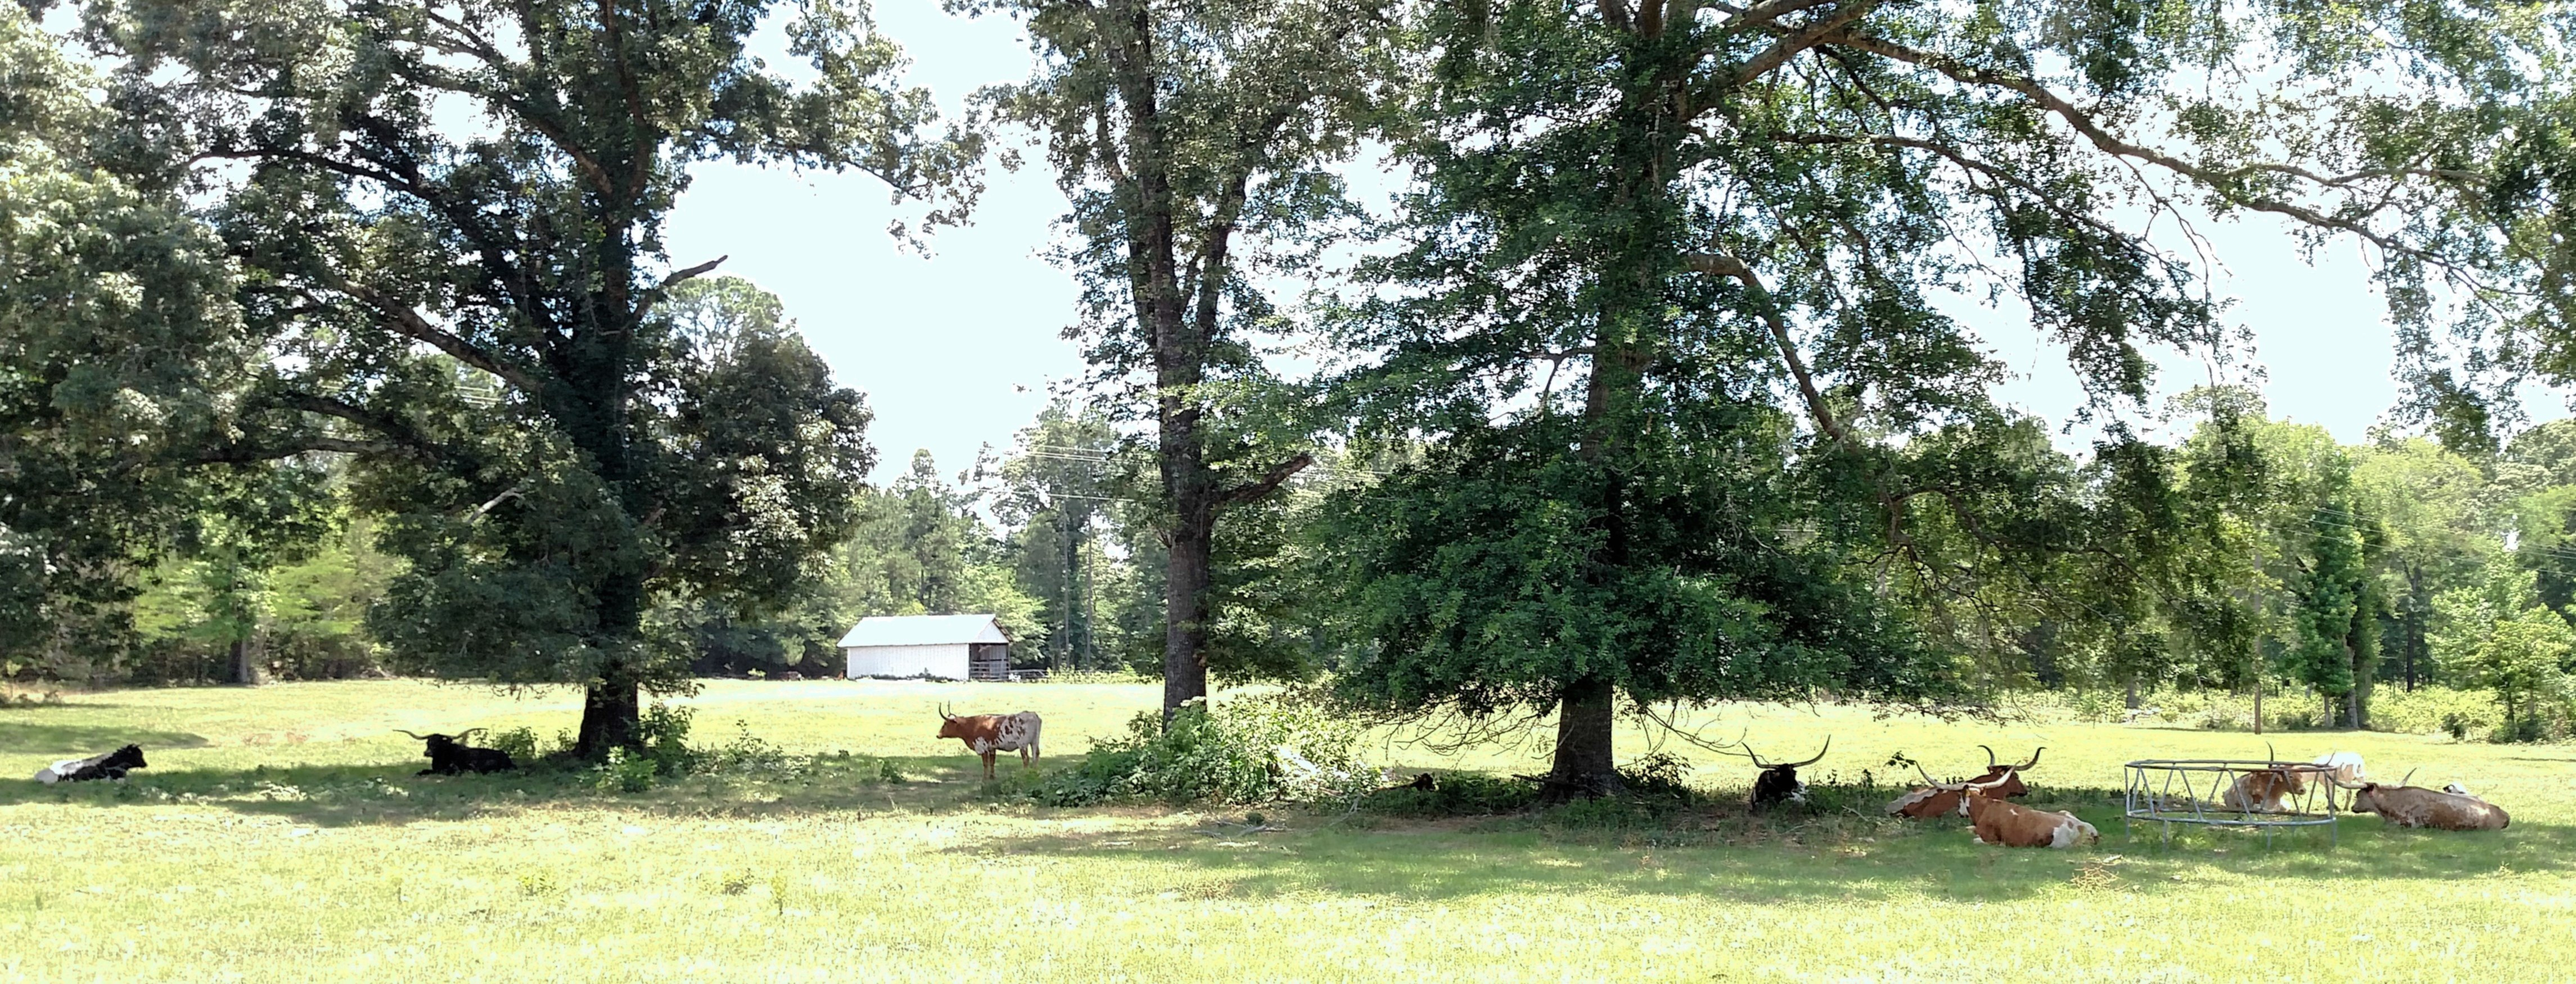 A large tree in a field at Beans Creek Ranch Cabin.